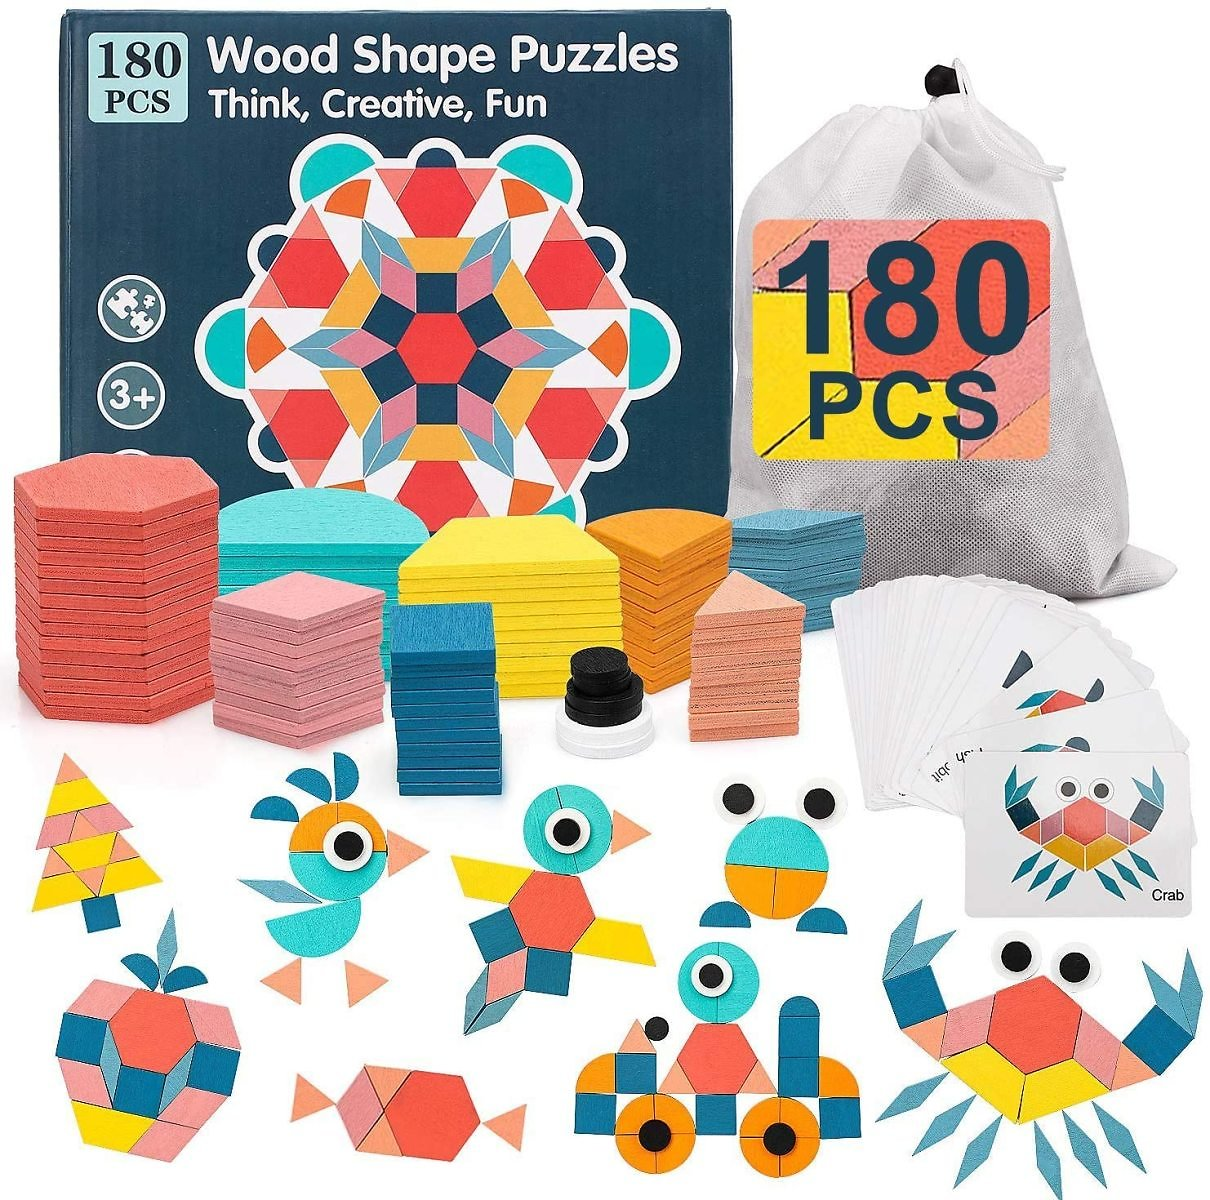 TOY Life 180Pcs Wooden Pattern Blocks for Kids Shape Puzzle Pattern Play Tangram Puzzles for Kids Ages 4-8 Geometric Shapes for Kids Preshool Kindergarten Montessori Toys with 24 Pcs Design Cards